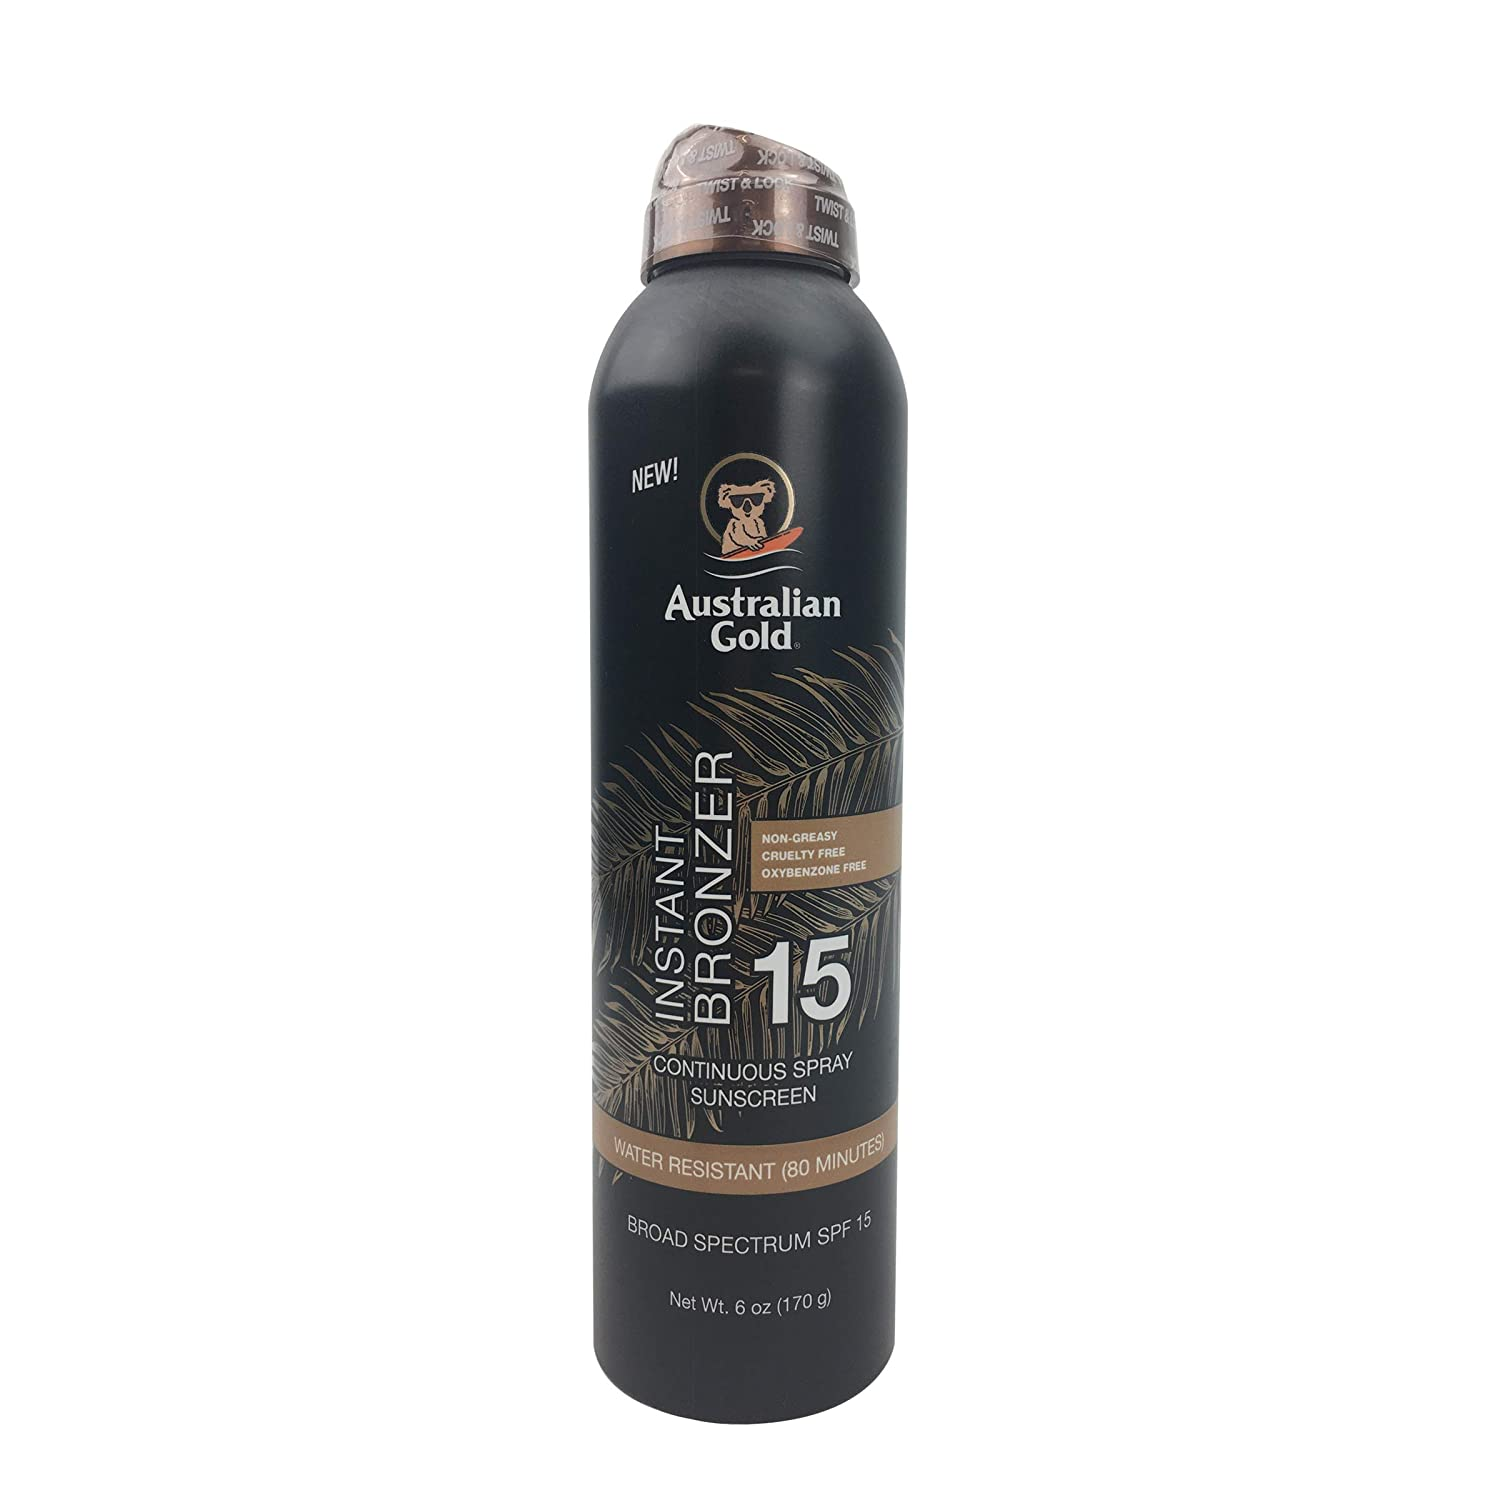 Australian Gold Continuous Spray Sunscreen with Instant Bronzer SPF 15, Immediate Glow & Dries Fast, Broad Spectrum, Water Resistant, Non-Greasy, Oxybenzone Free, Cruelty Free, 6 Ounce